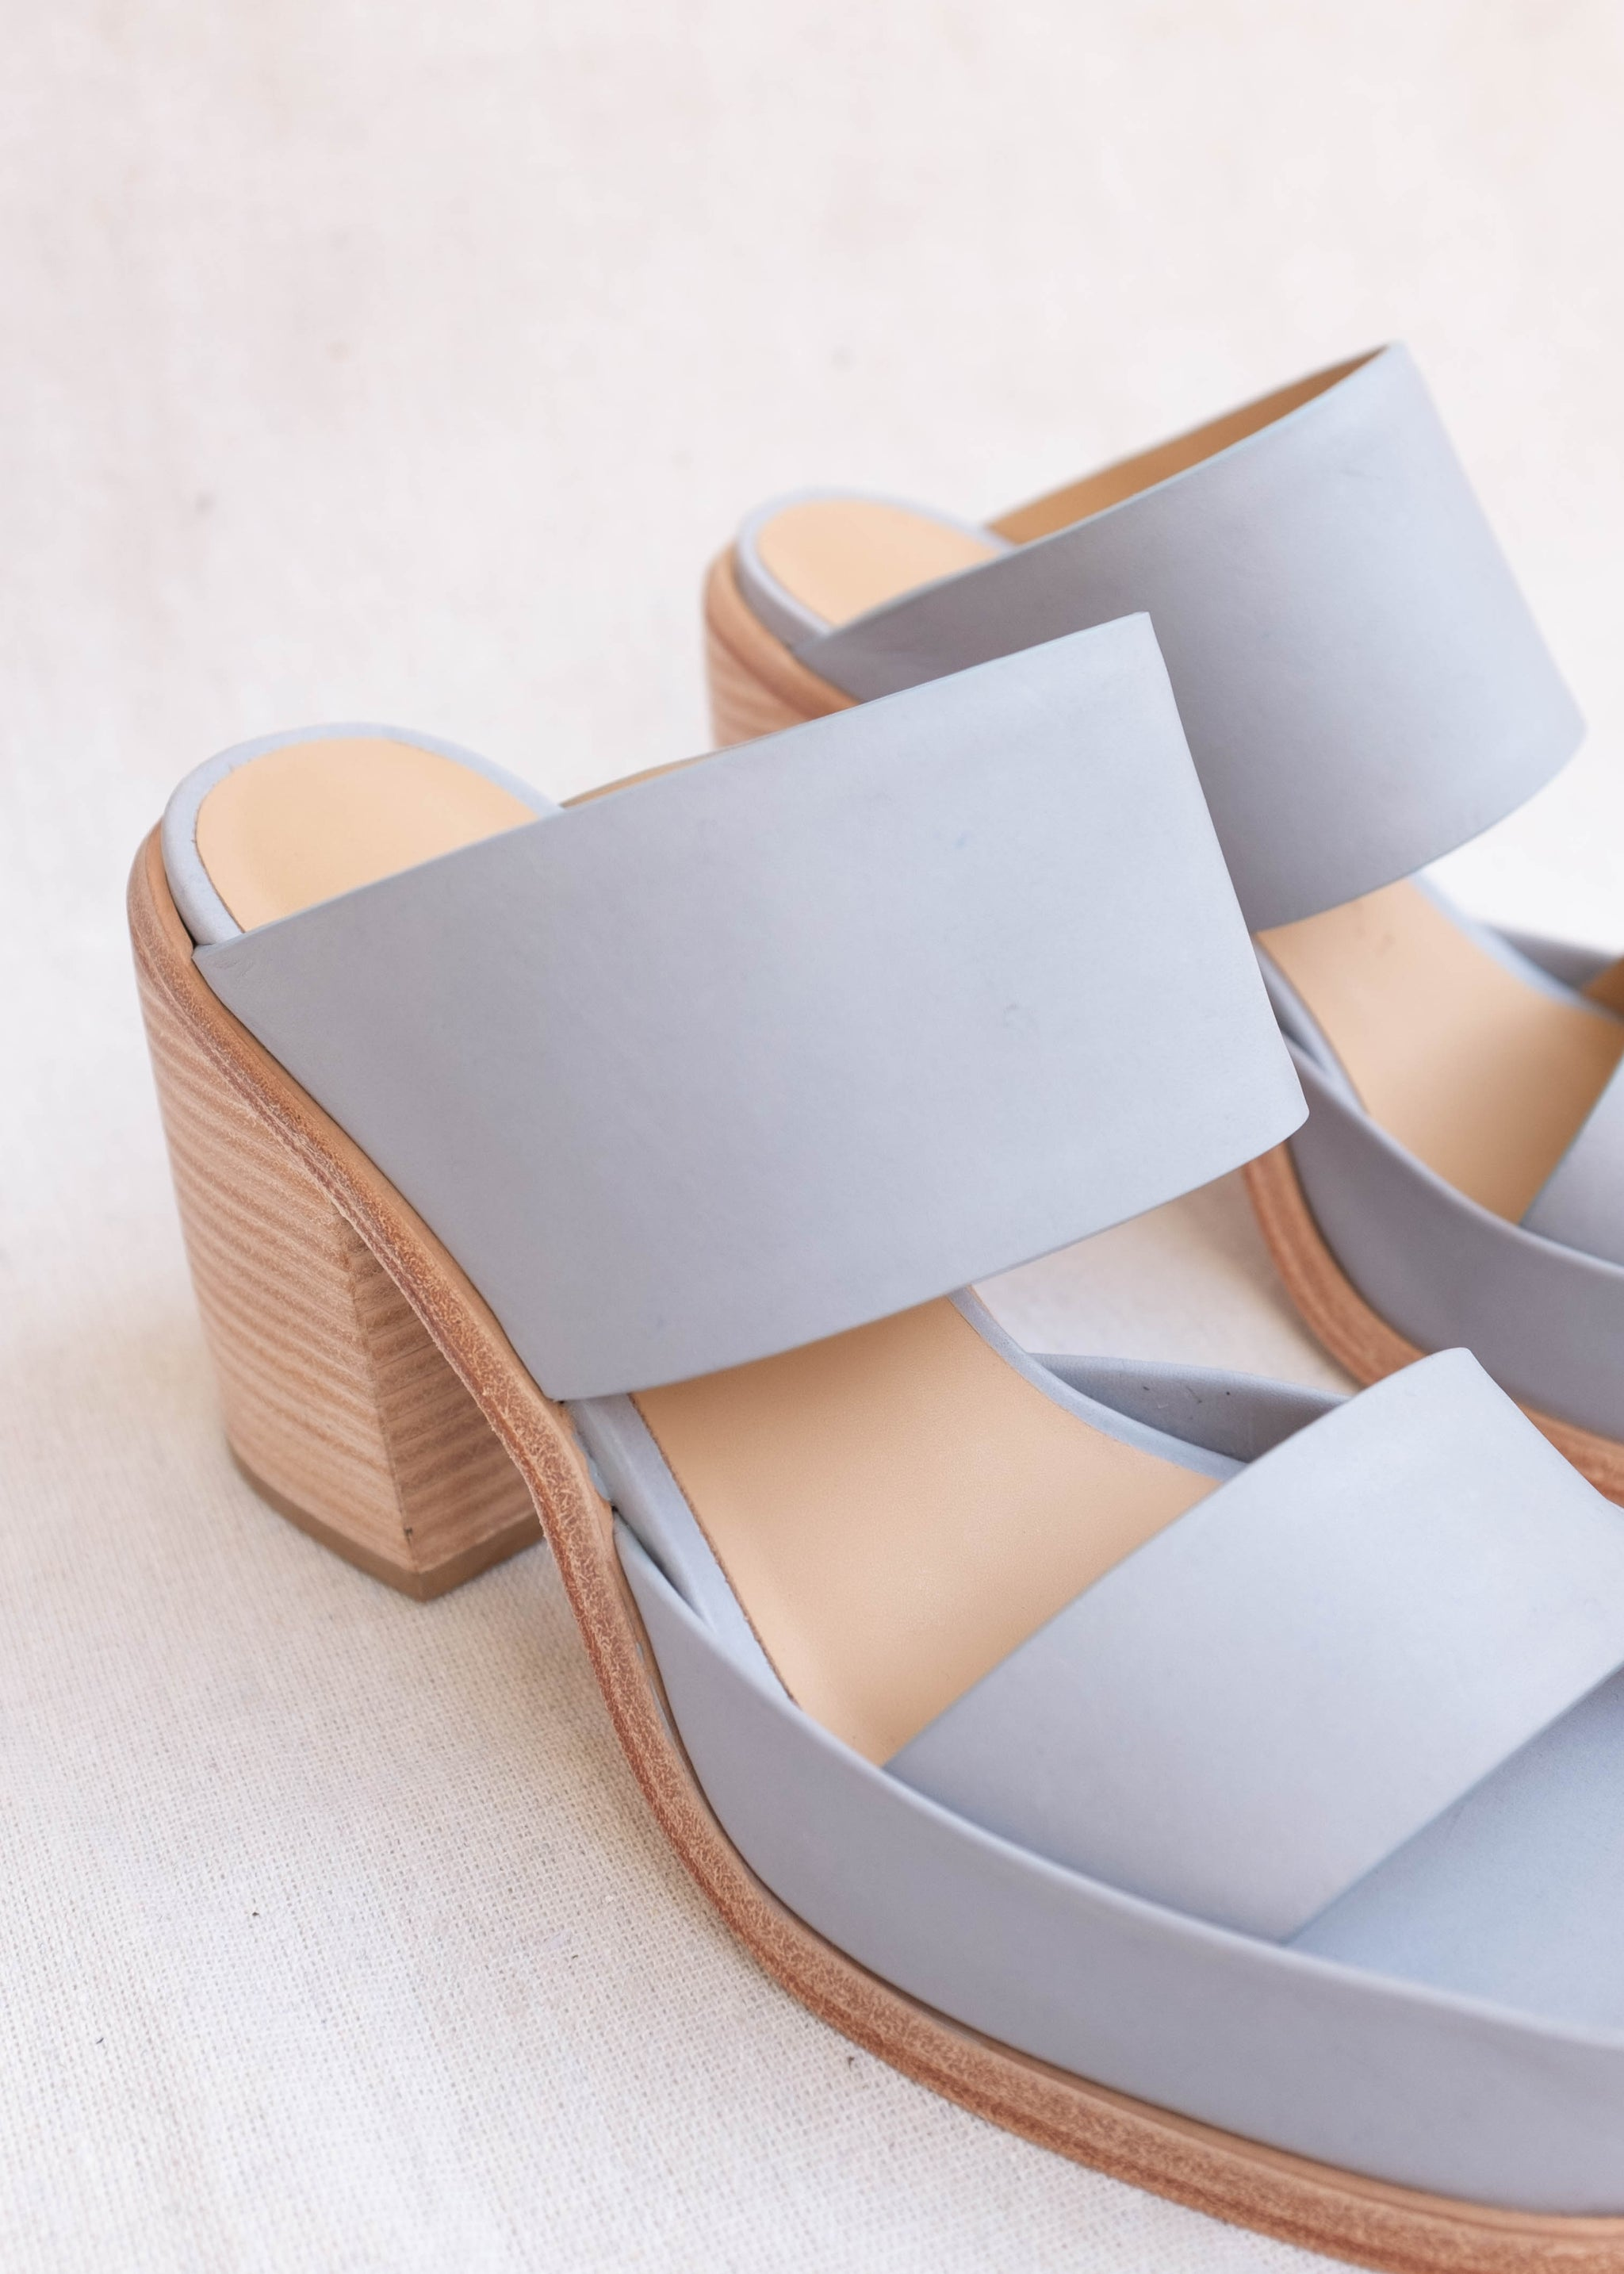 Detail view of blue-grey high-heeled sandals.